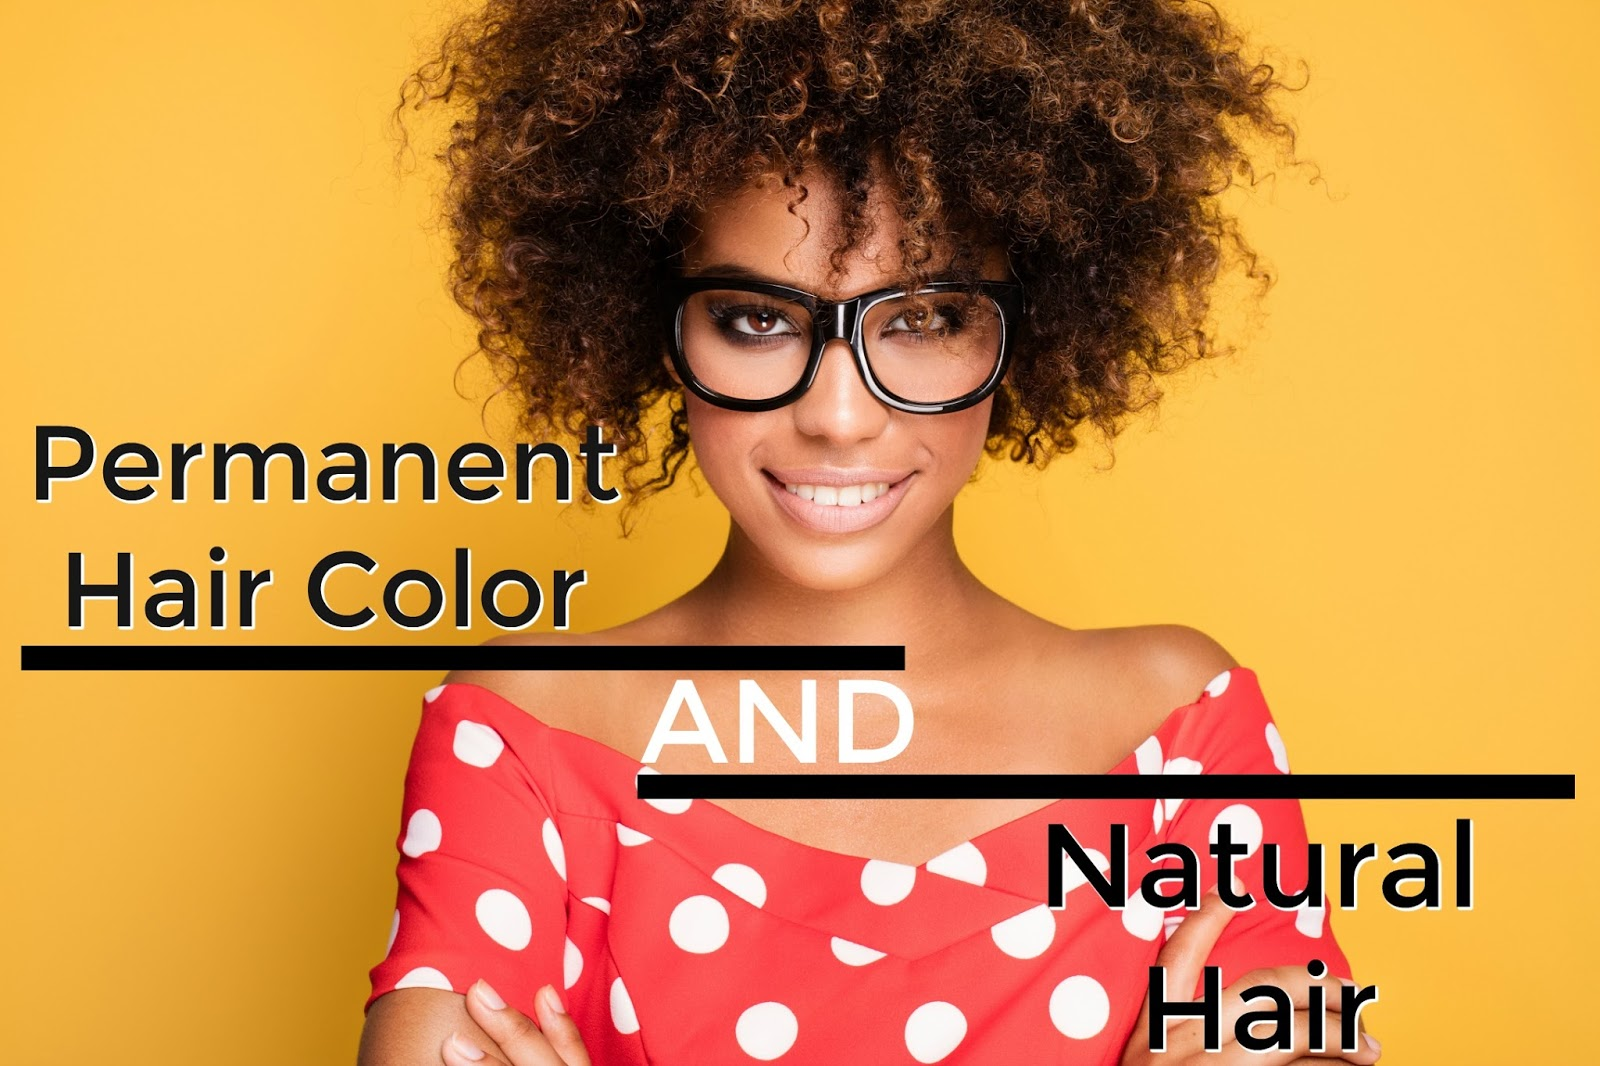 Ready to Color Natural Hair With Permanent Color? Learn about what it is, and how to use it without damaging your hair. We've got all the tips!